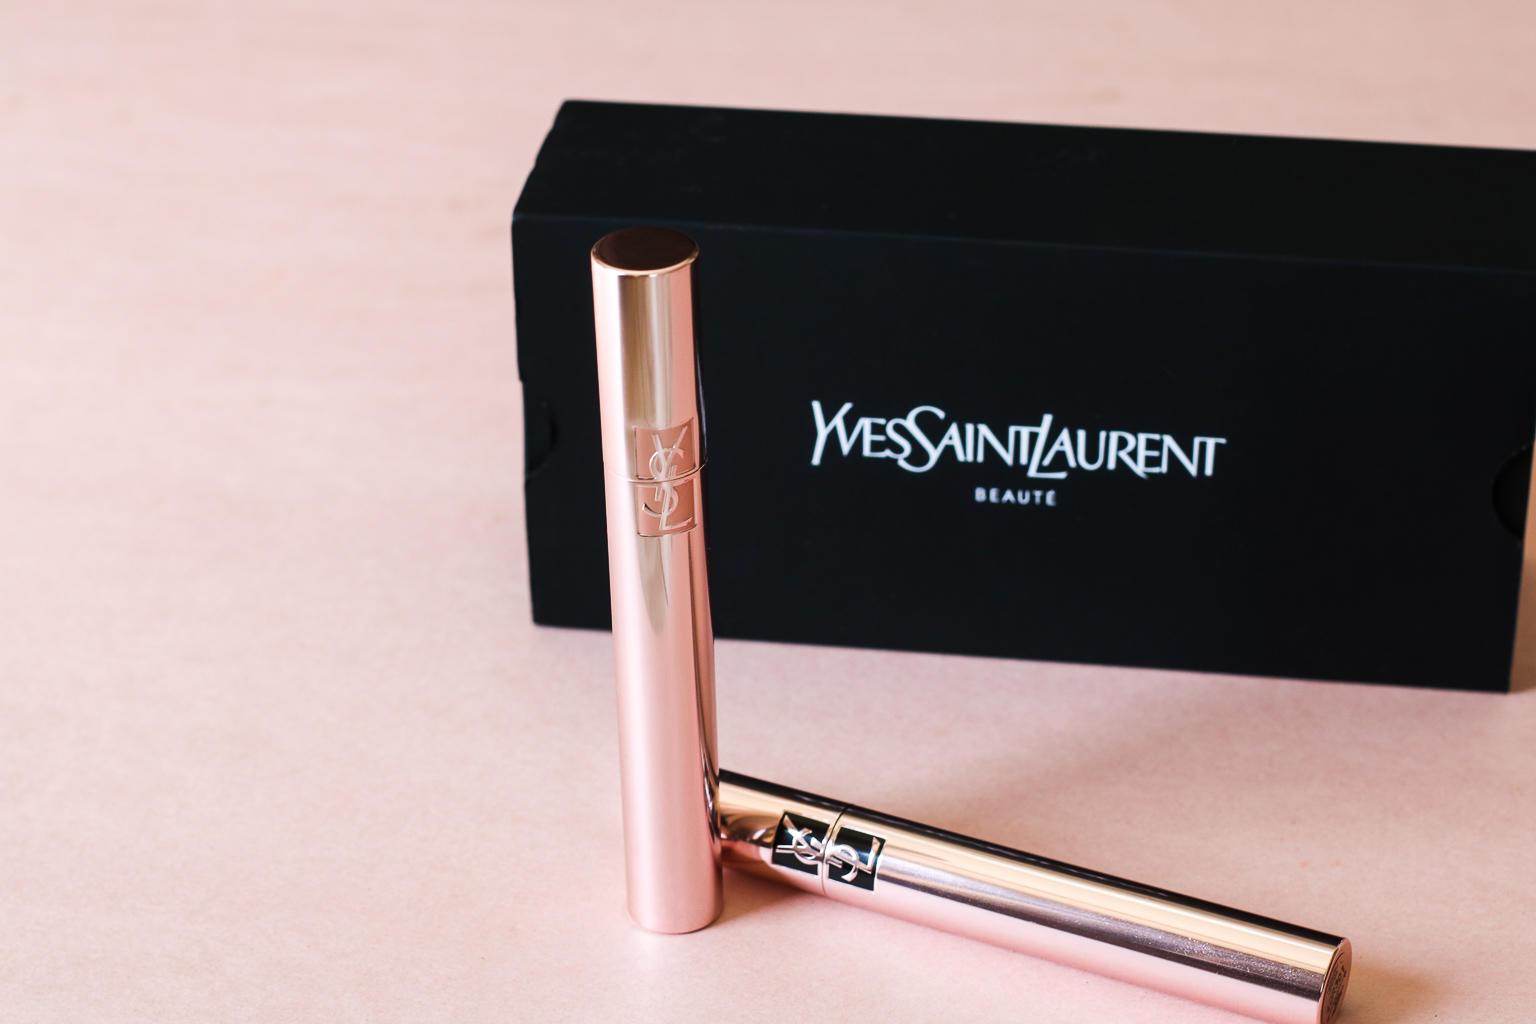 Want That False Lash Effect? Try This Mascara Now - Yves Saint Laurent The Curler | Style Domination by Dominique